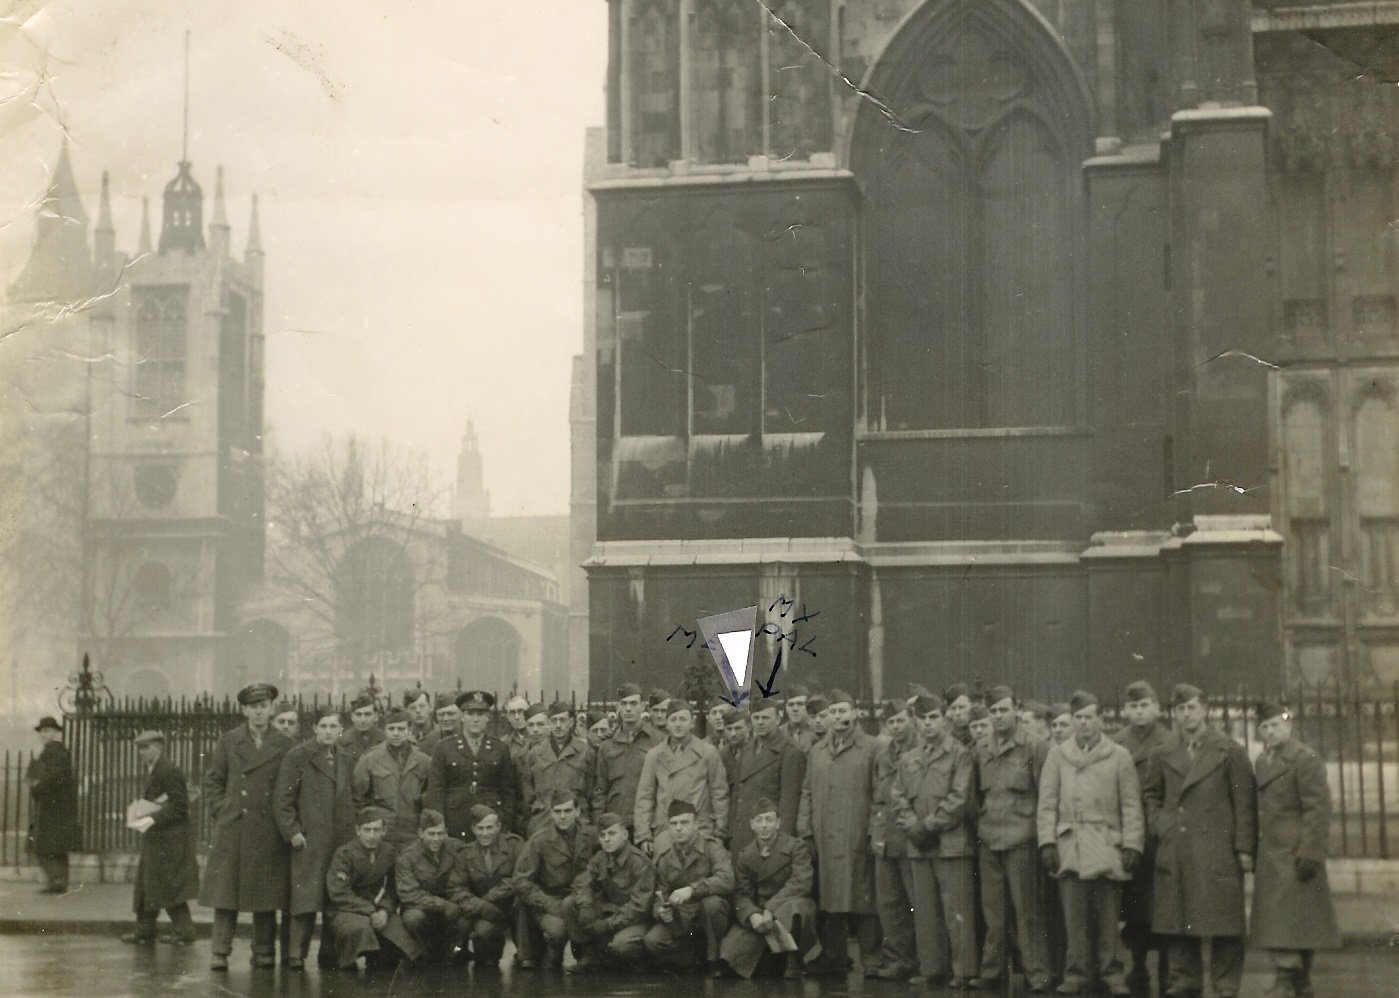 253rd Co C at Westminster, London Fall 1944.jpg